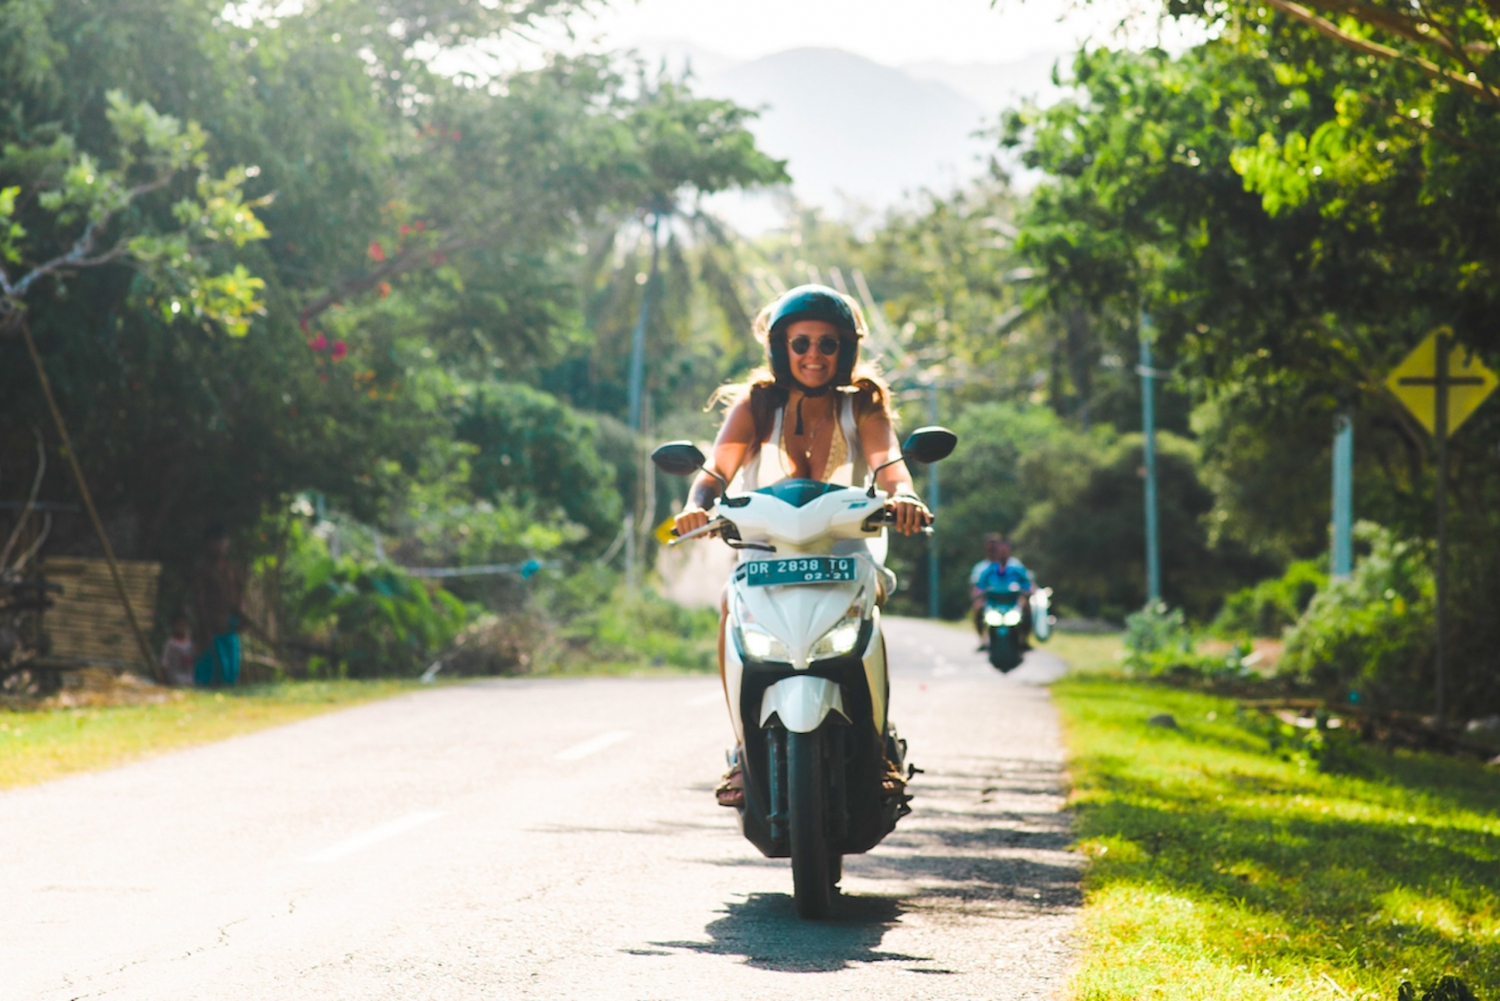 Scooter or Motorbike Rental with Delivery